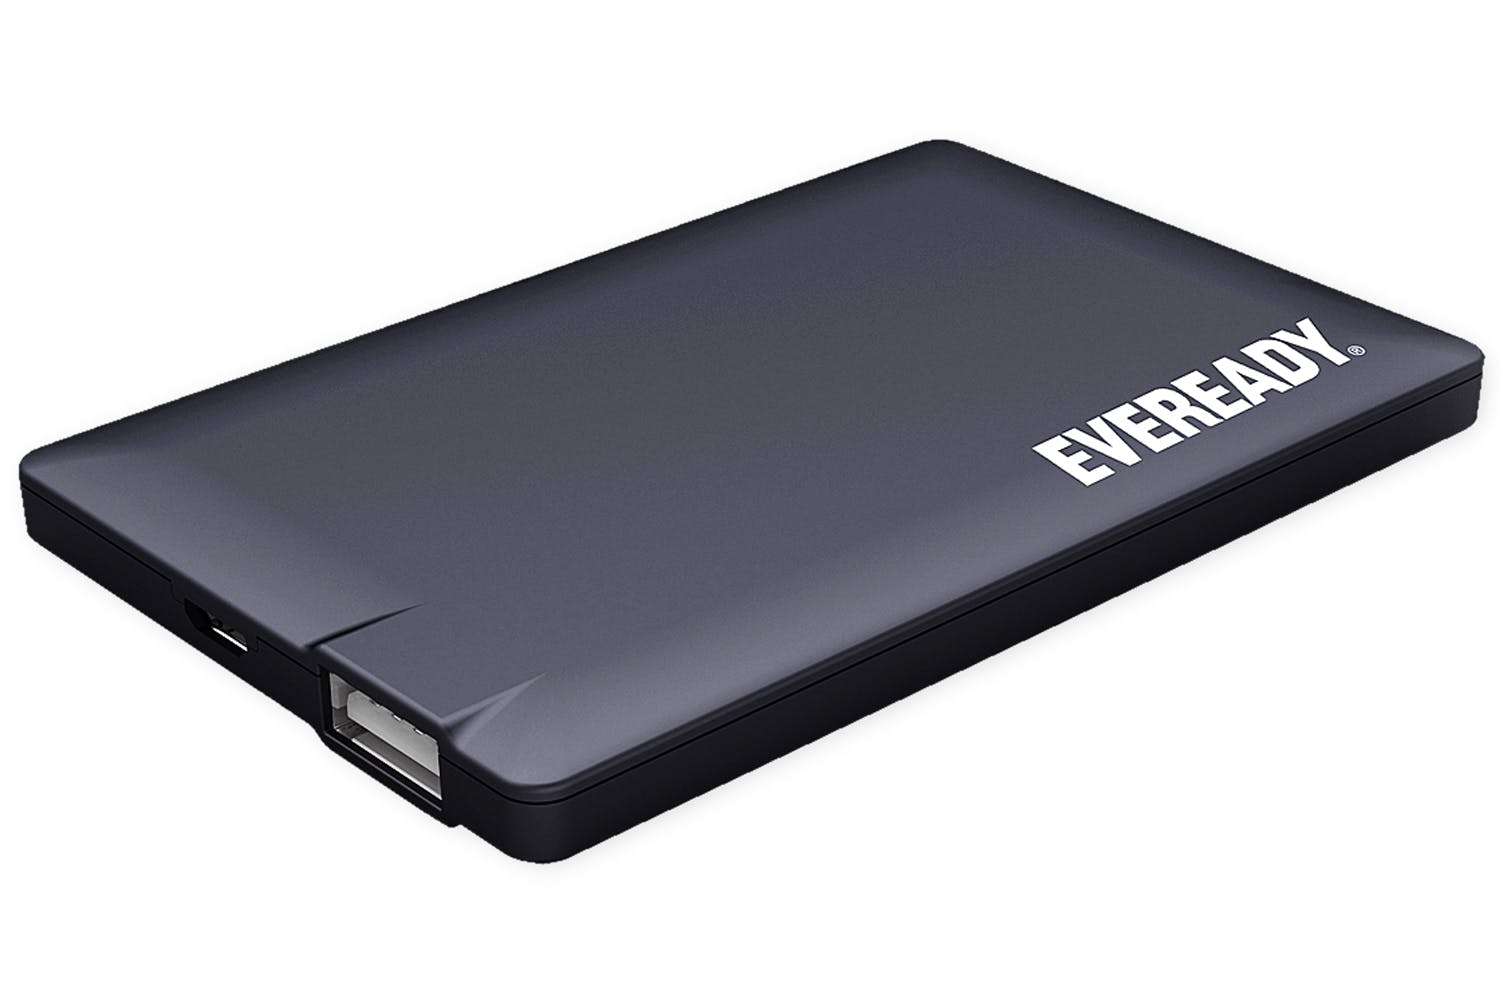 Eveready 2500mAh Portable Power Bank | Black